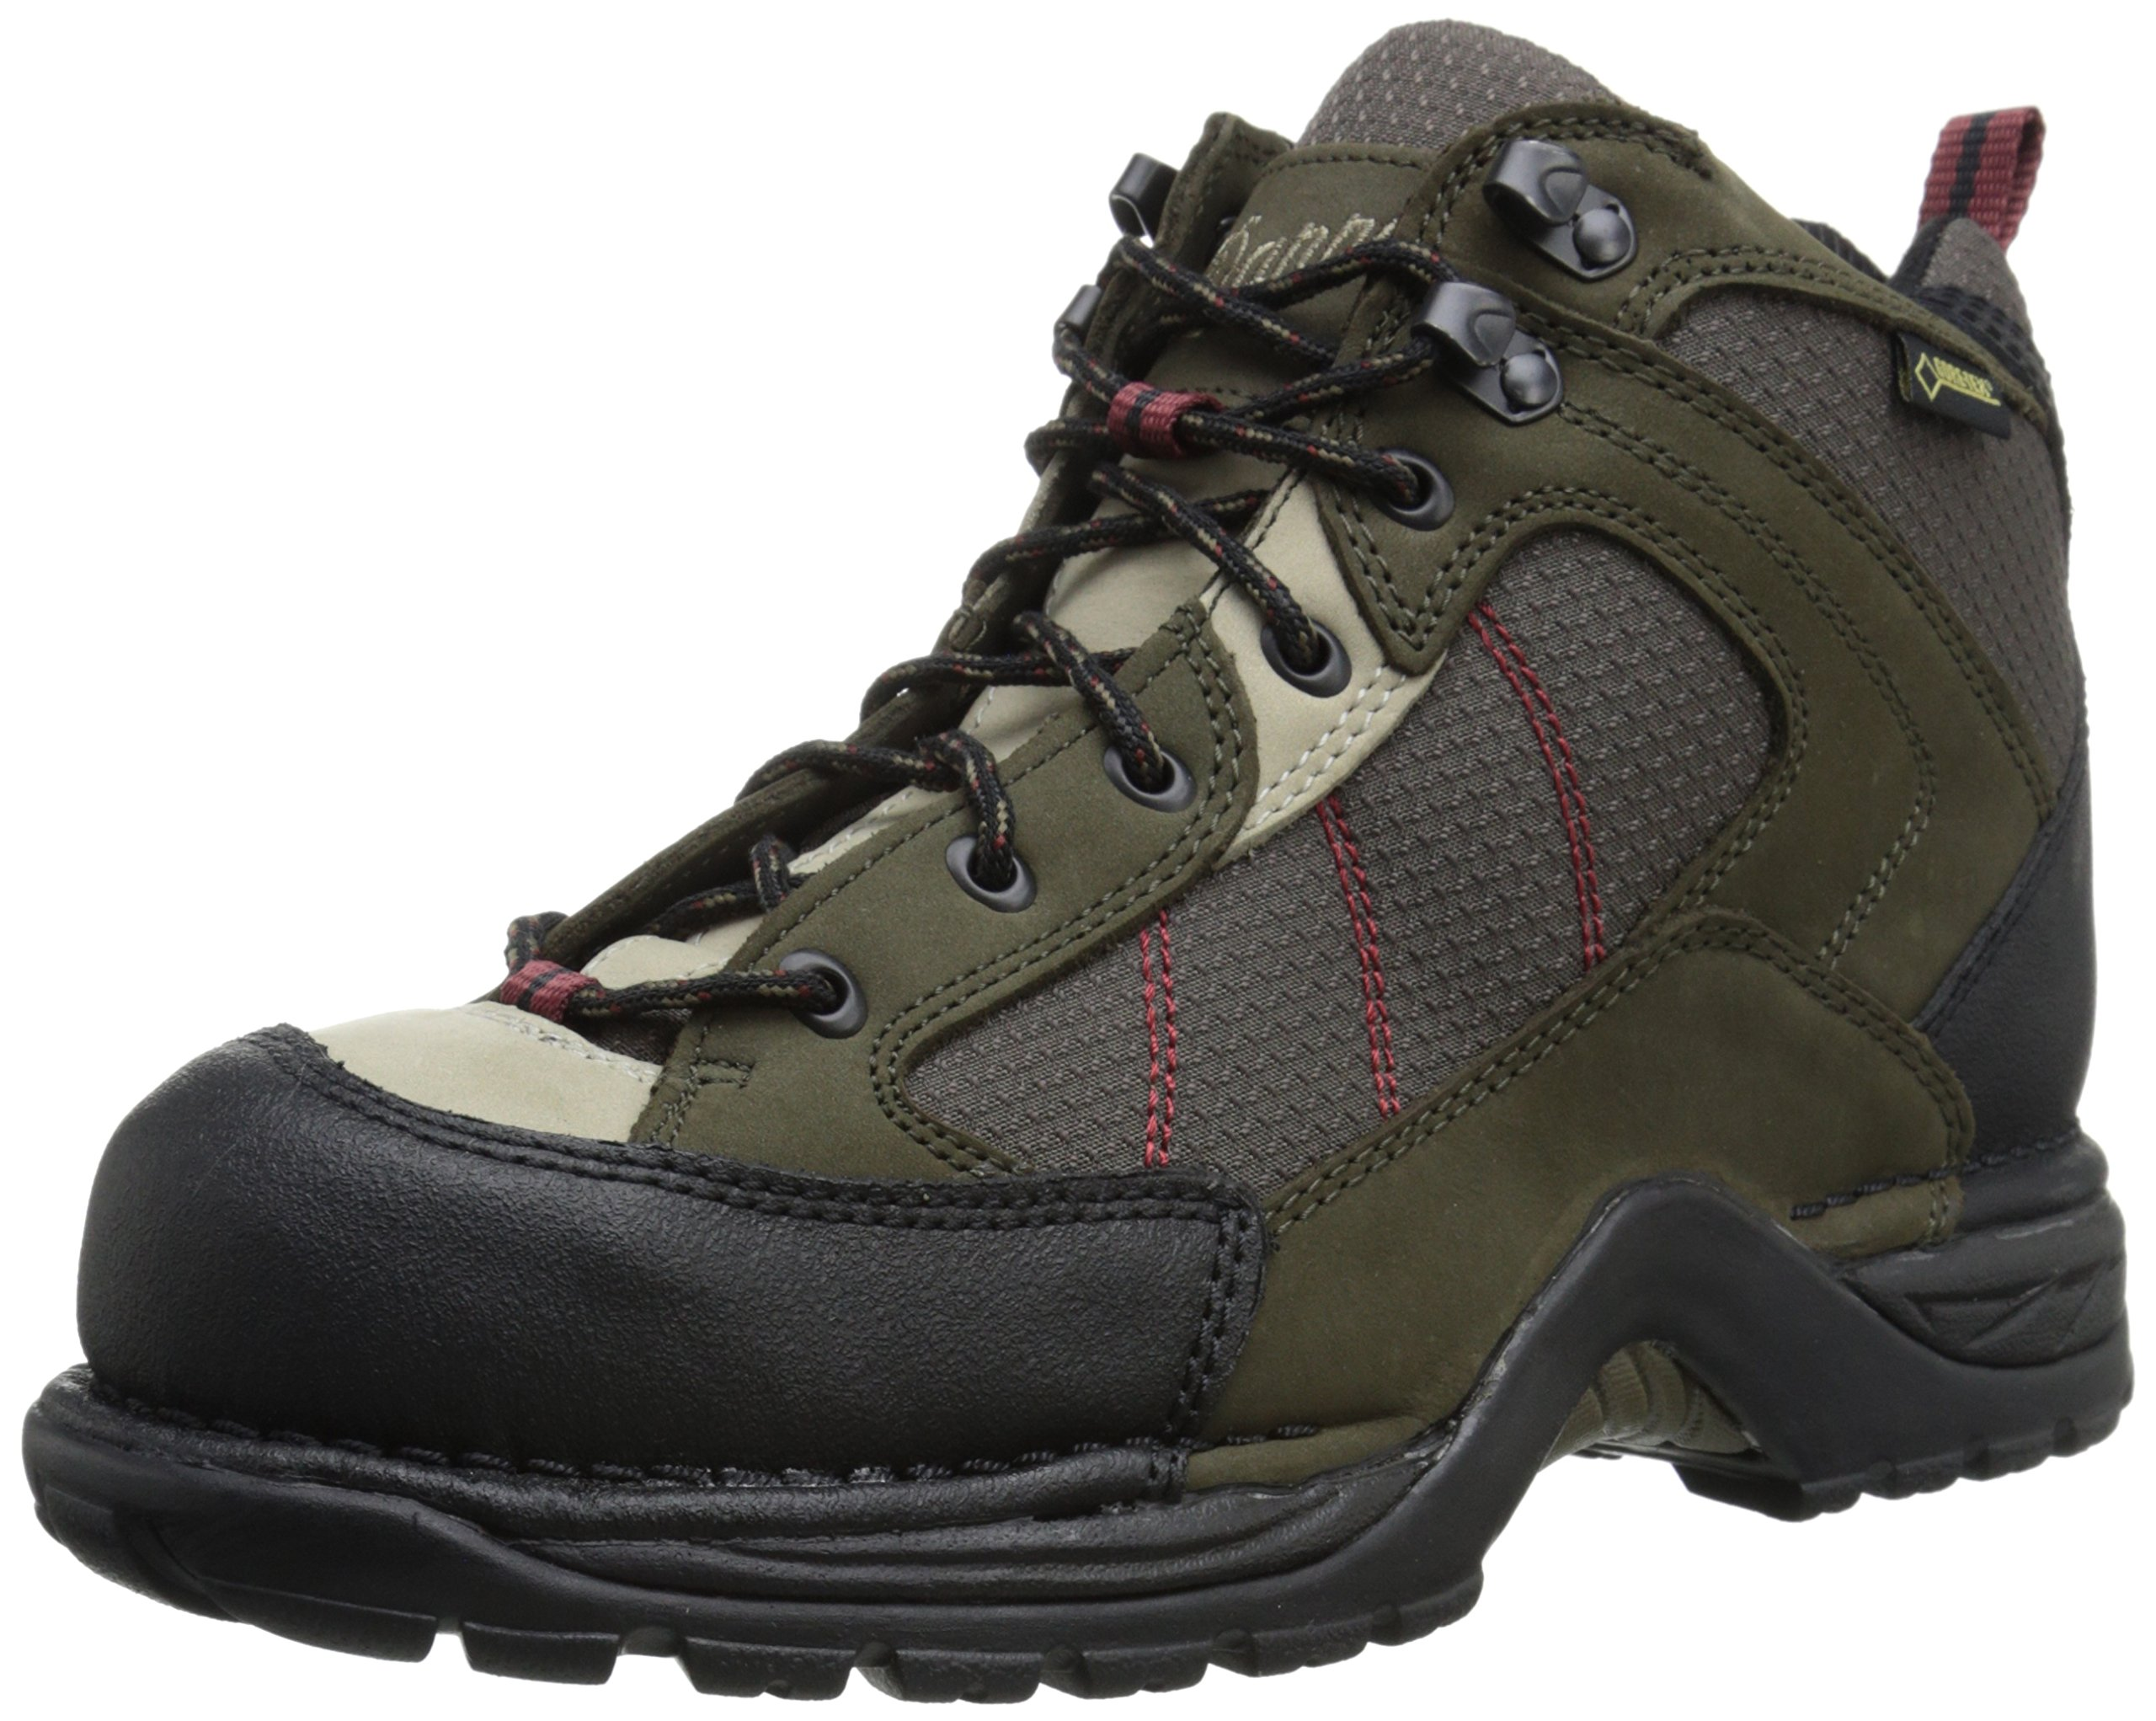 Best Rated in Men's Hiking Boots & Helpful Customer